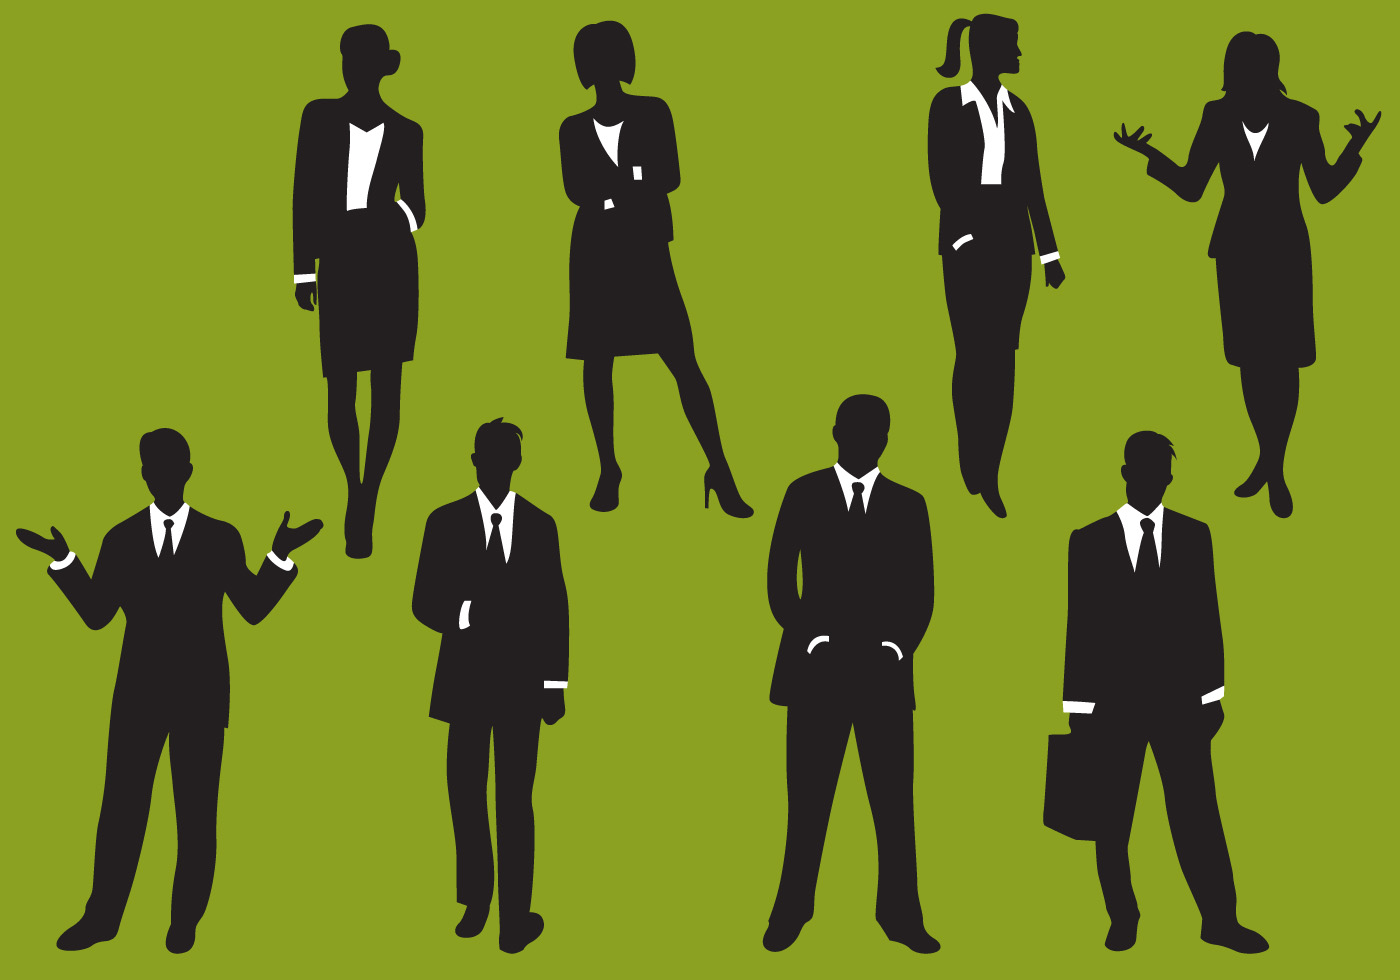 woman-and-man-business-silhouettes-vector.jpg